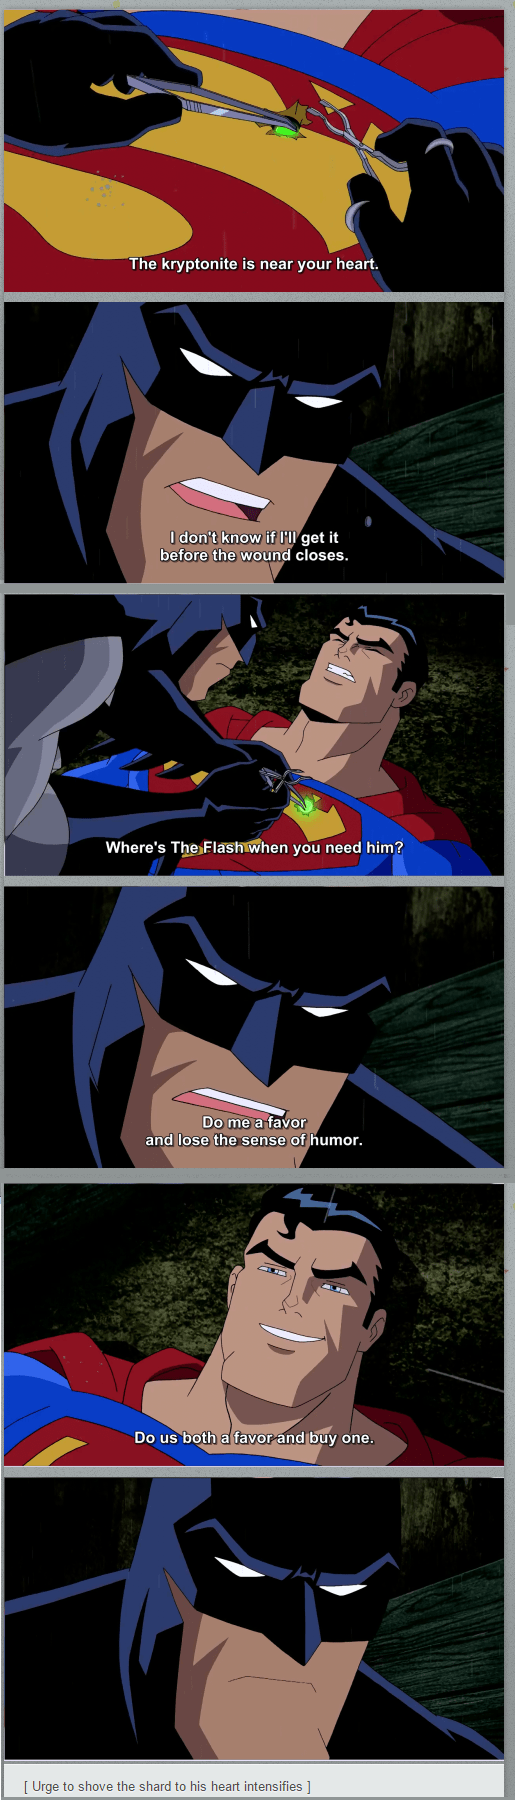 dc-superheroes-batman-and-superman-sassy-moment